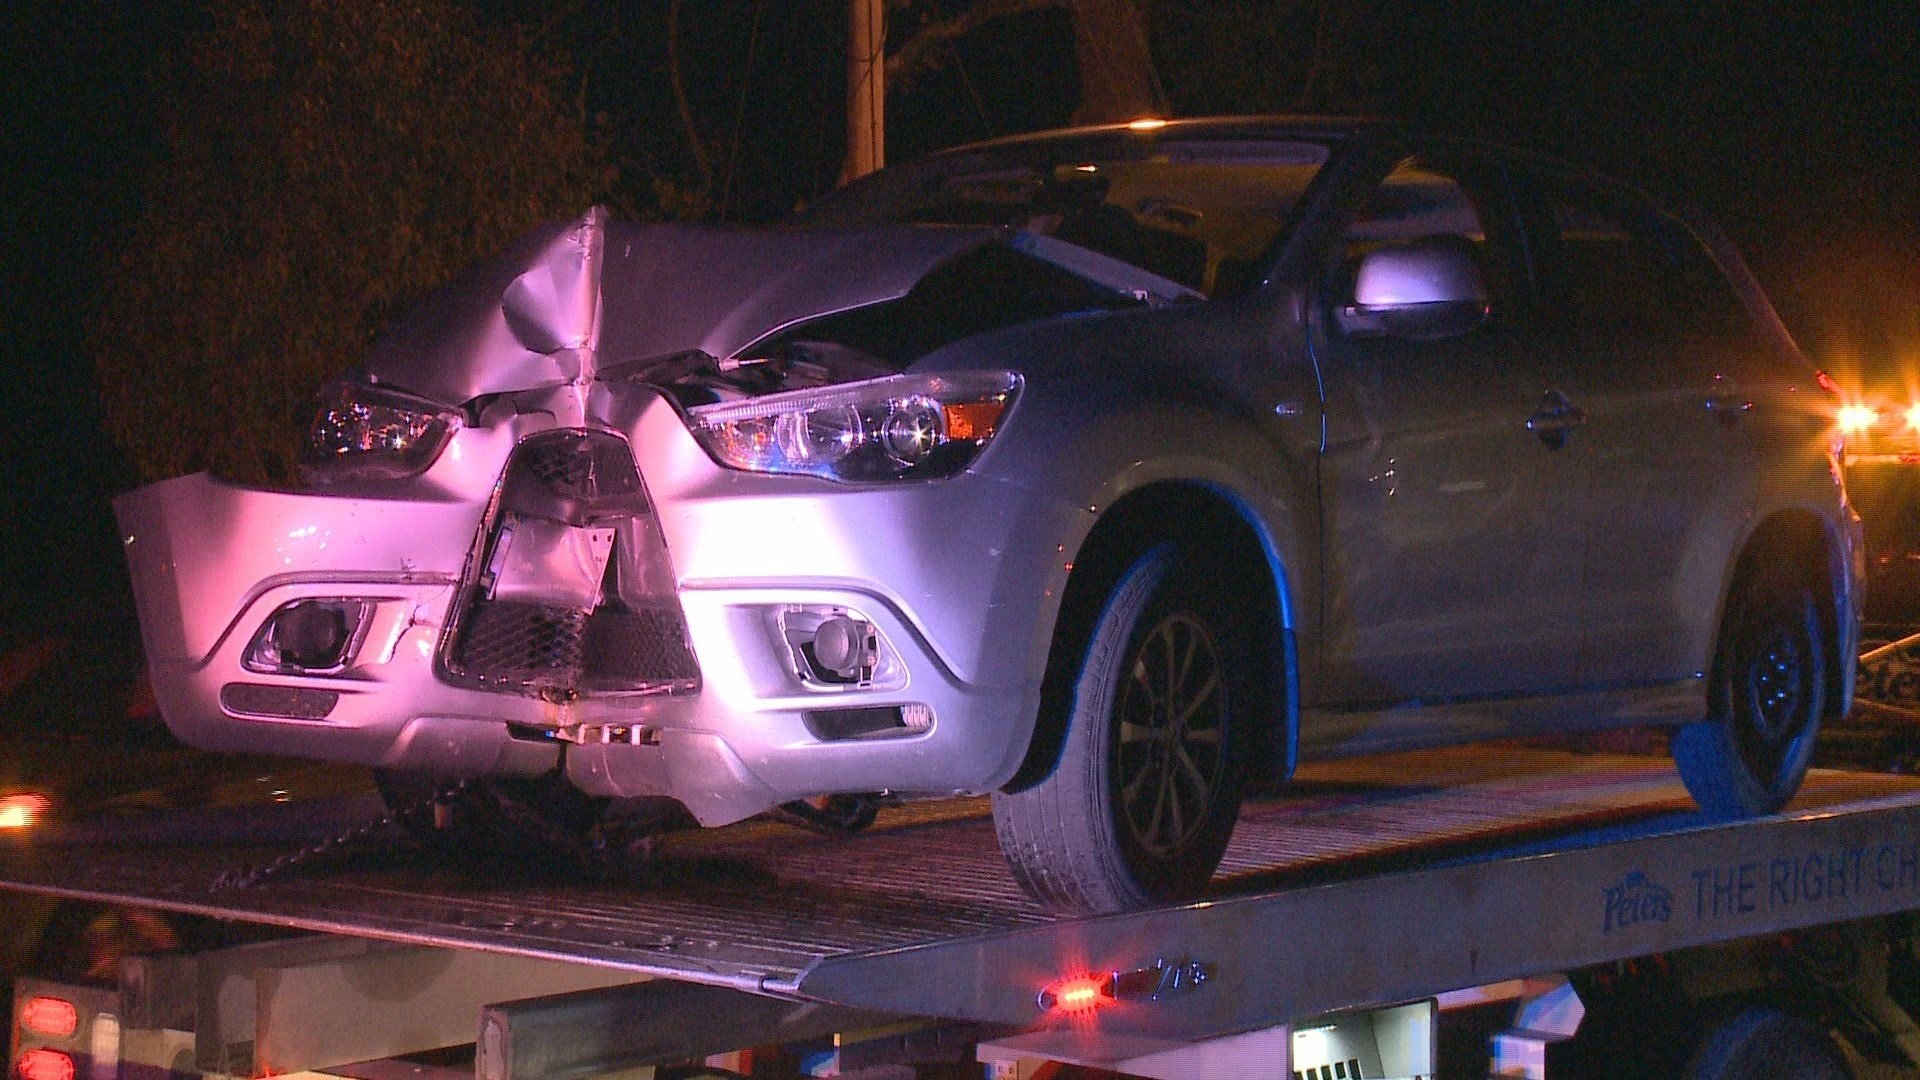 Picture of vehicle after the crash